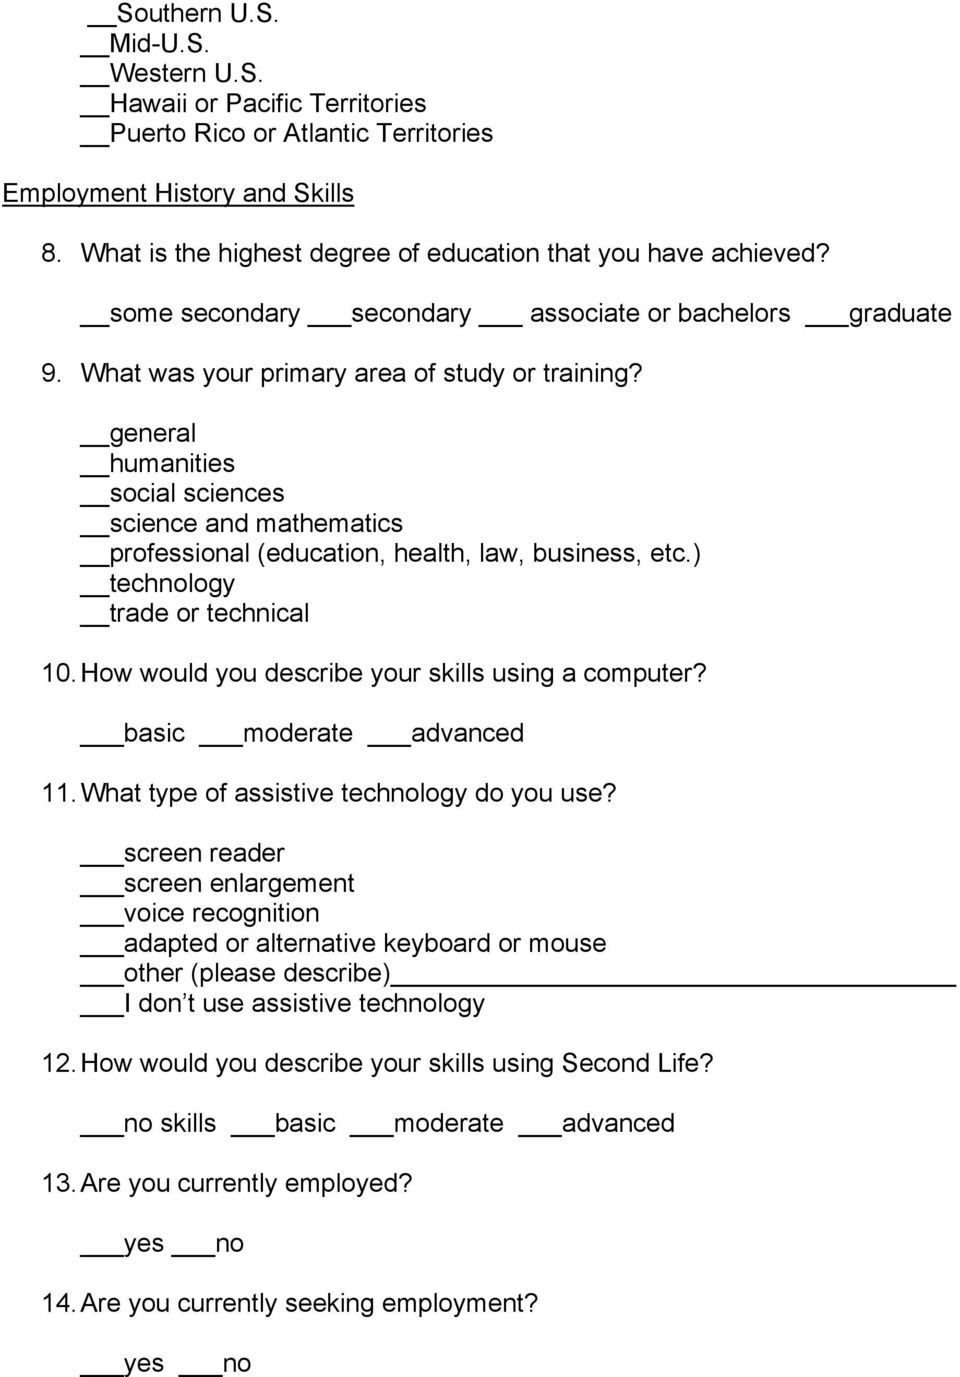 general humanities social sciences science and mathematics professional (education, health, law, business, etc.) technology trade or technical 10. How would you describe your skills using a computer?